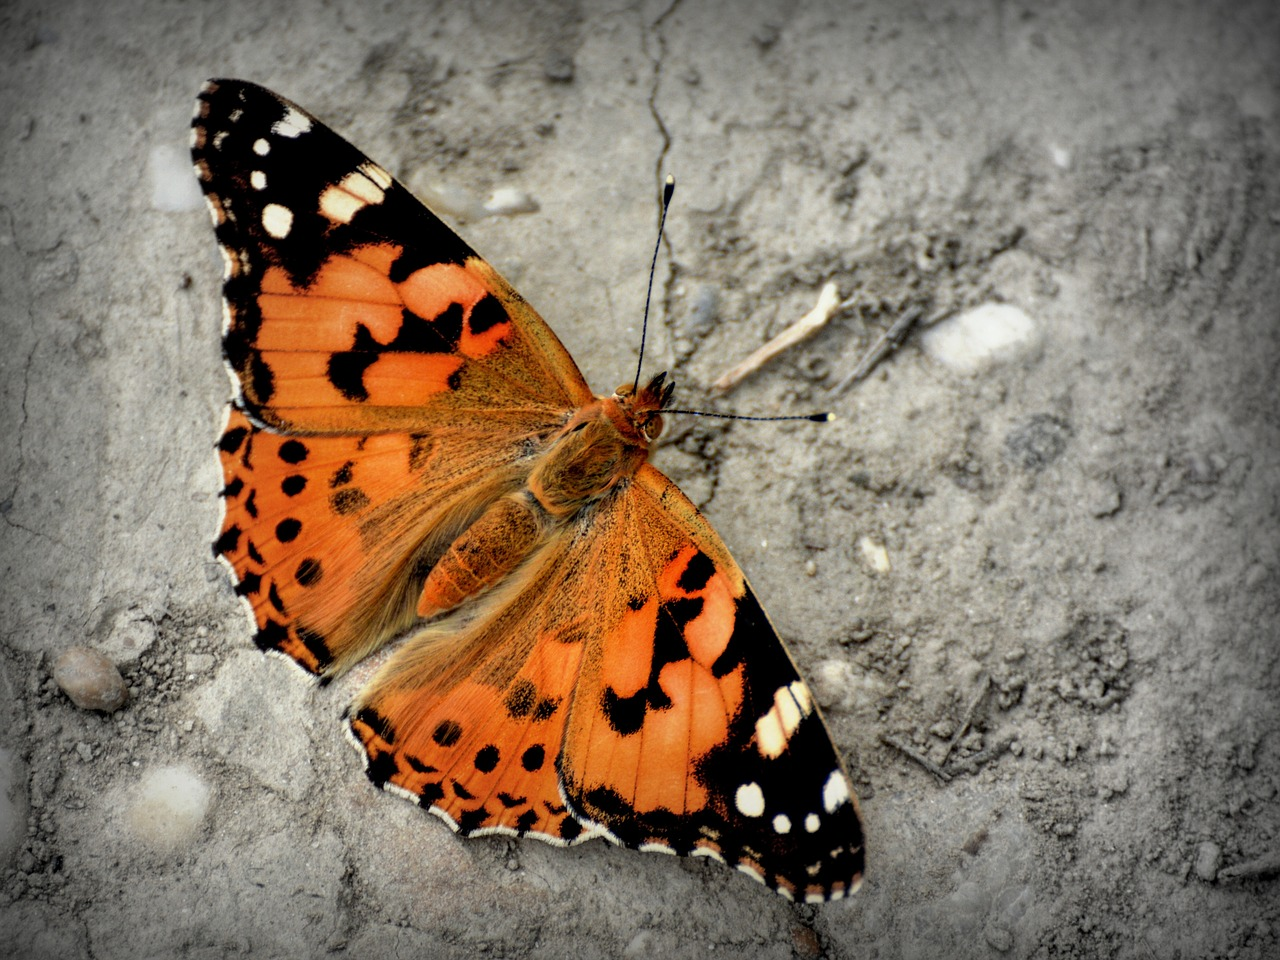 FREE butterfly image